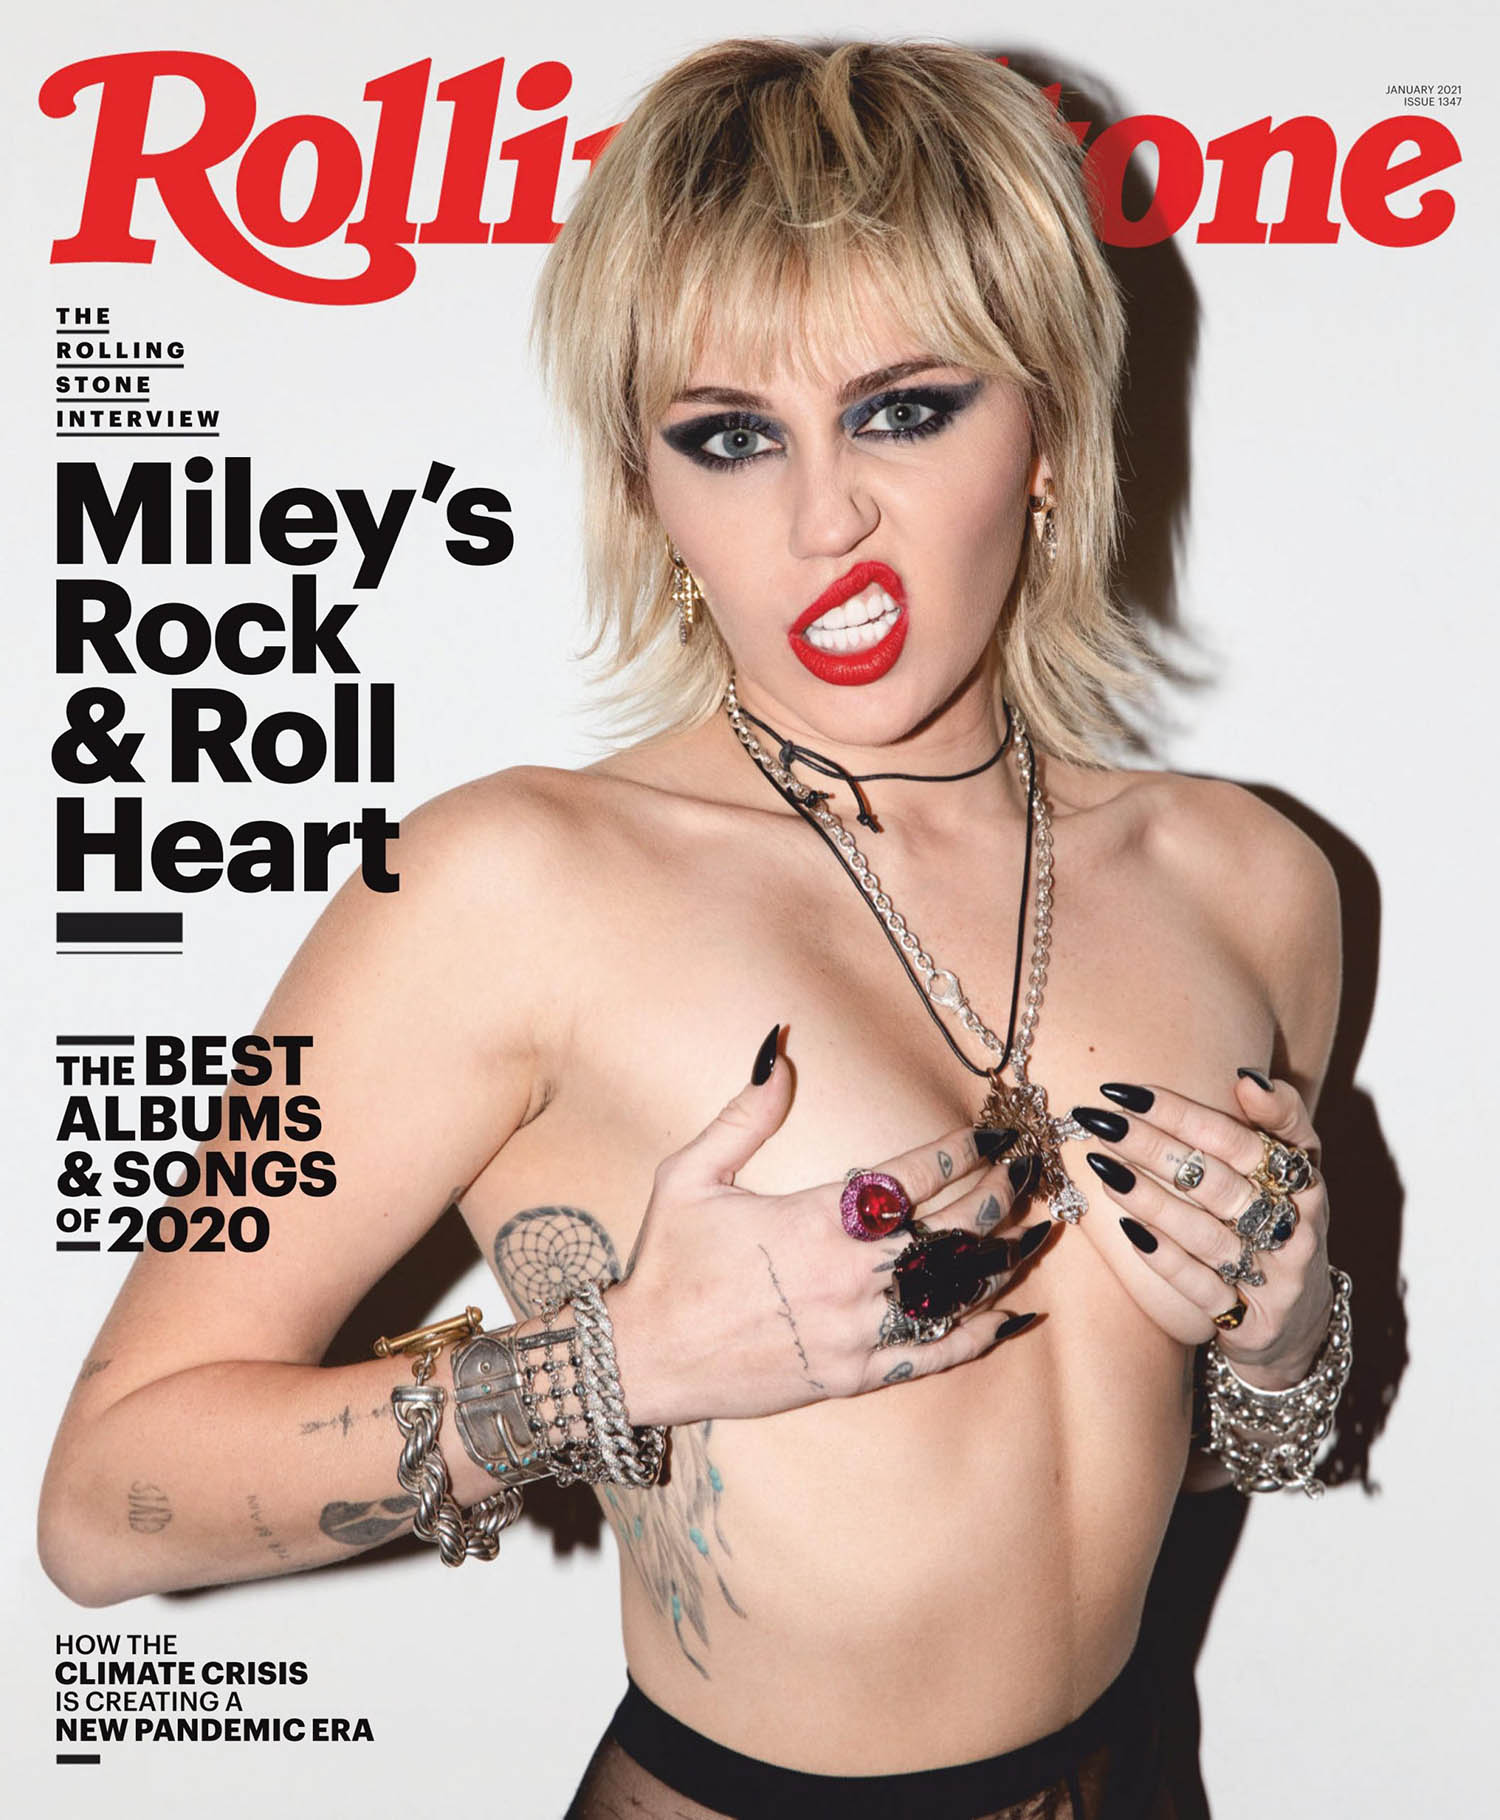 Miley Cyrus covers Rolling Stone January 2021 by Brad EltermanMiley Cyrus covers Rolling Stone January 2021 by Brad Elterman